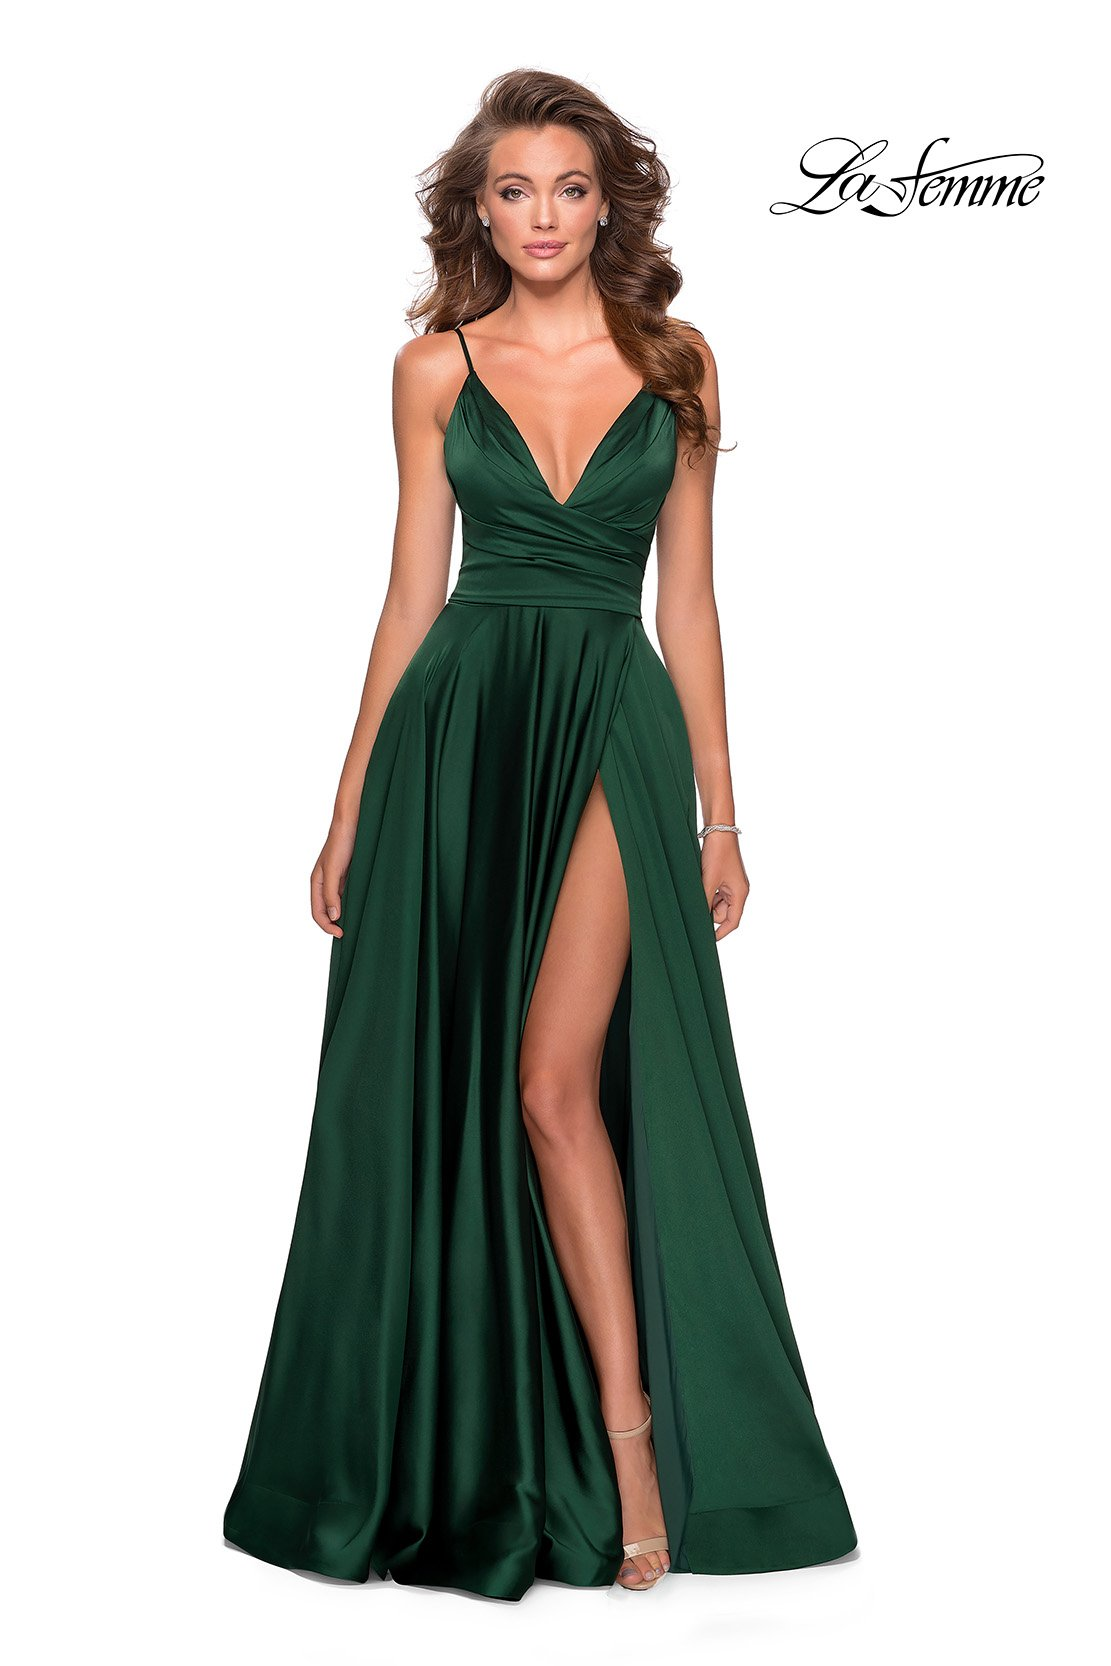 La Femme 28607 prom dress images.  La Femme 28607 is available in these colors: Emerald, Mauve, Navy, Pale Yellow, Royal Blue, Royal Purple.